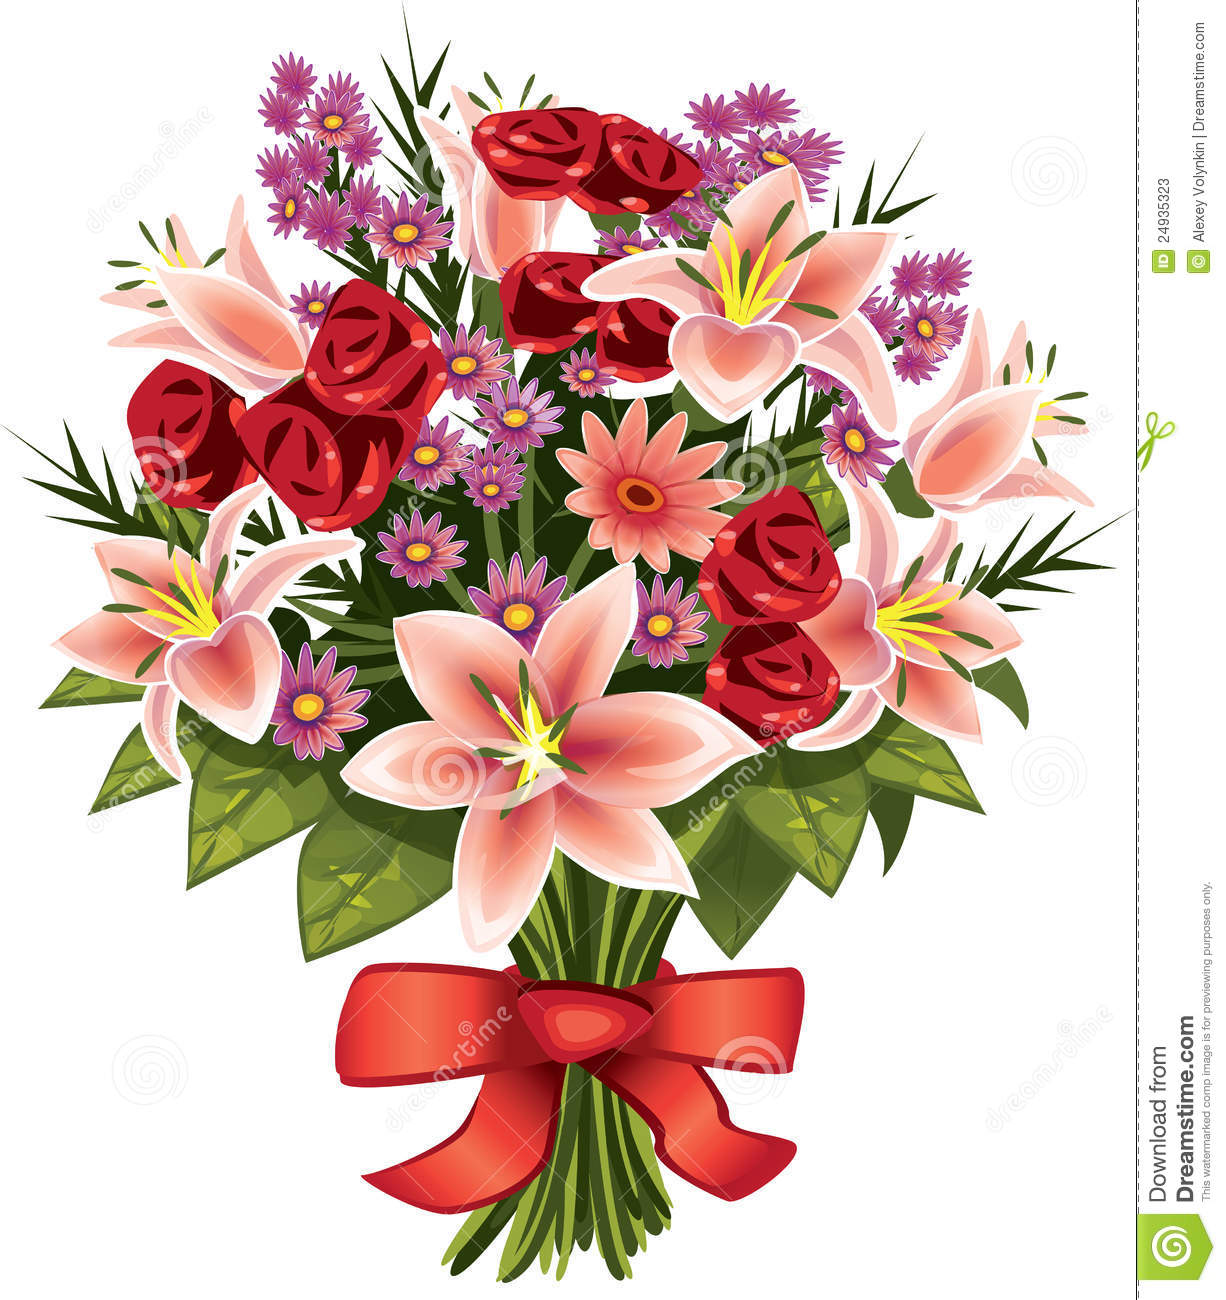 Bouquet of flowers stock illustration illustration of love 24935323 bouquet of flowers izmirmasajfo Choice Image